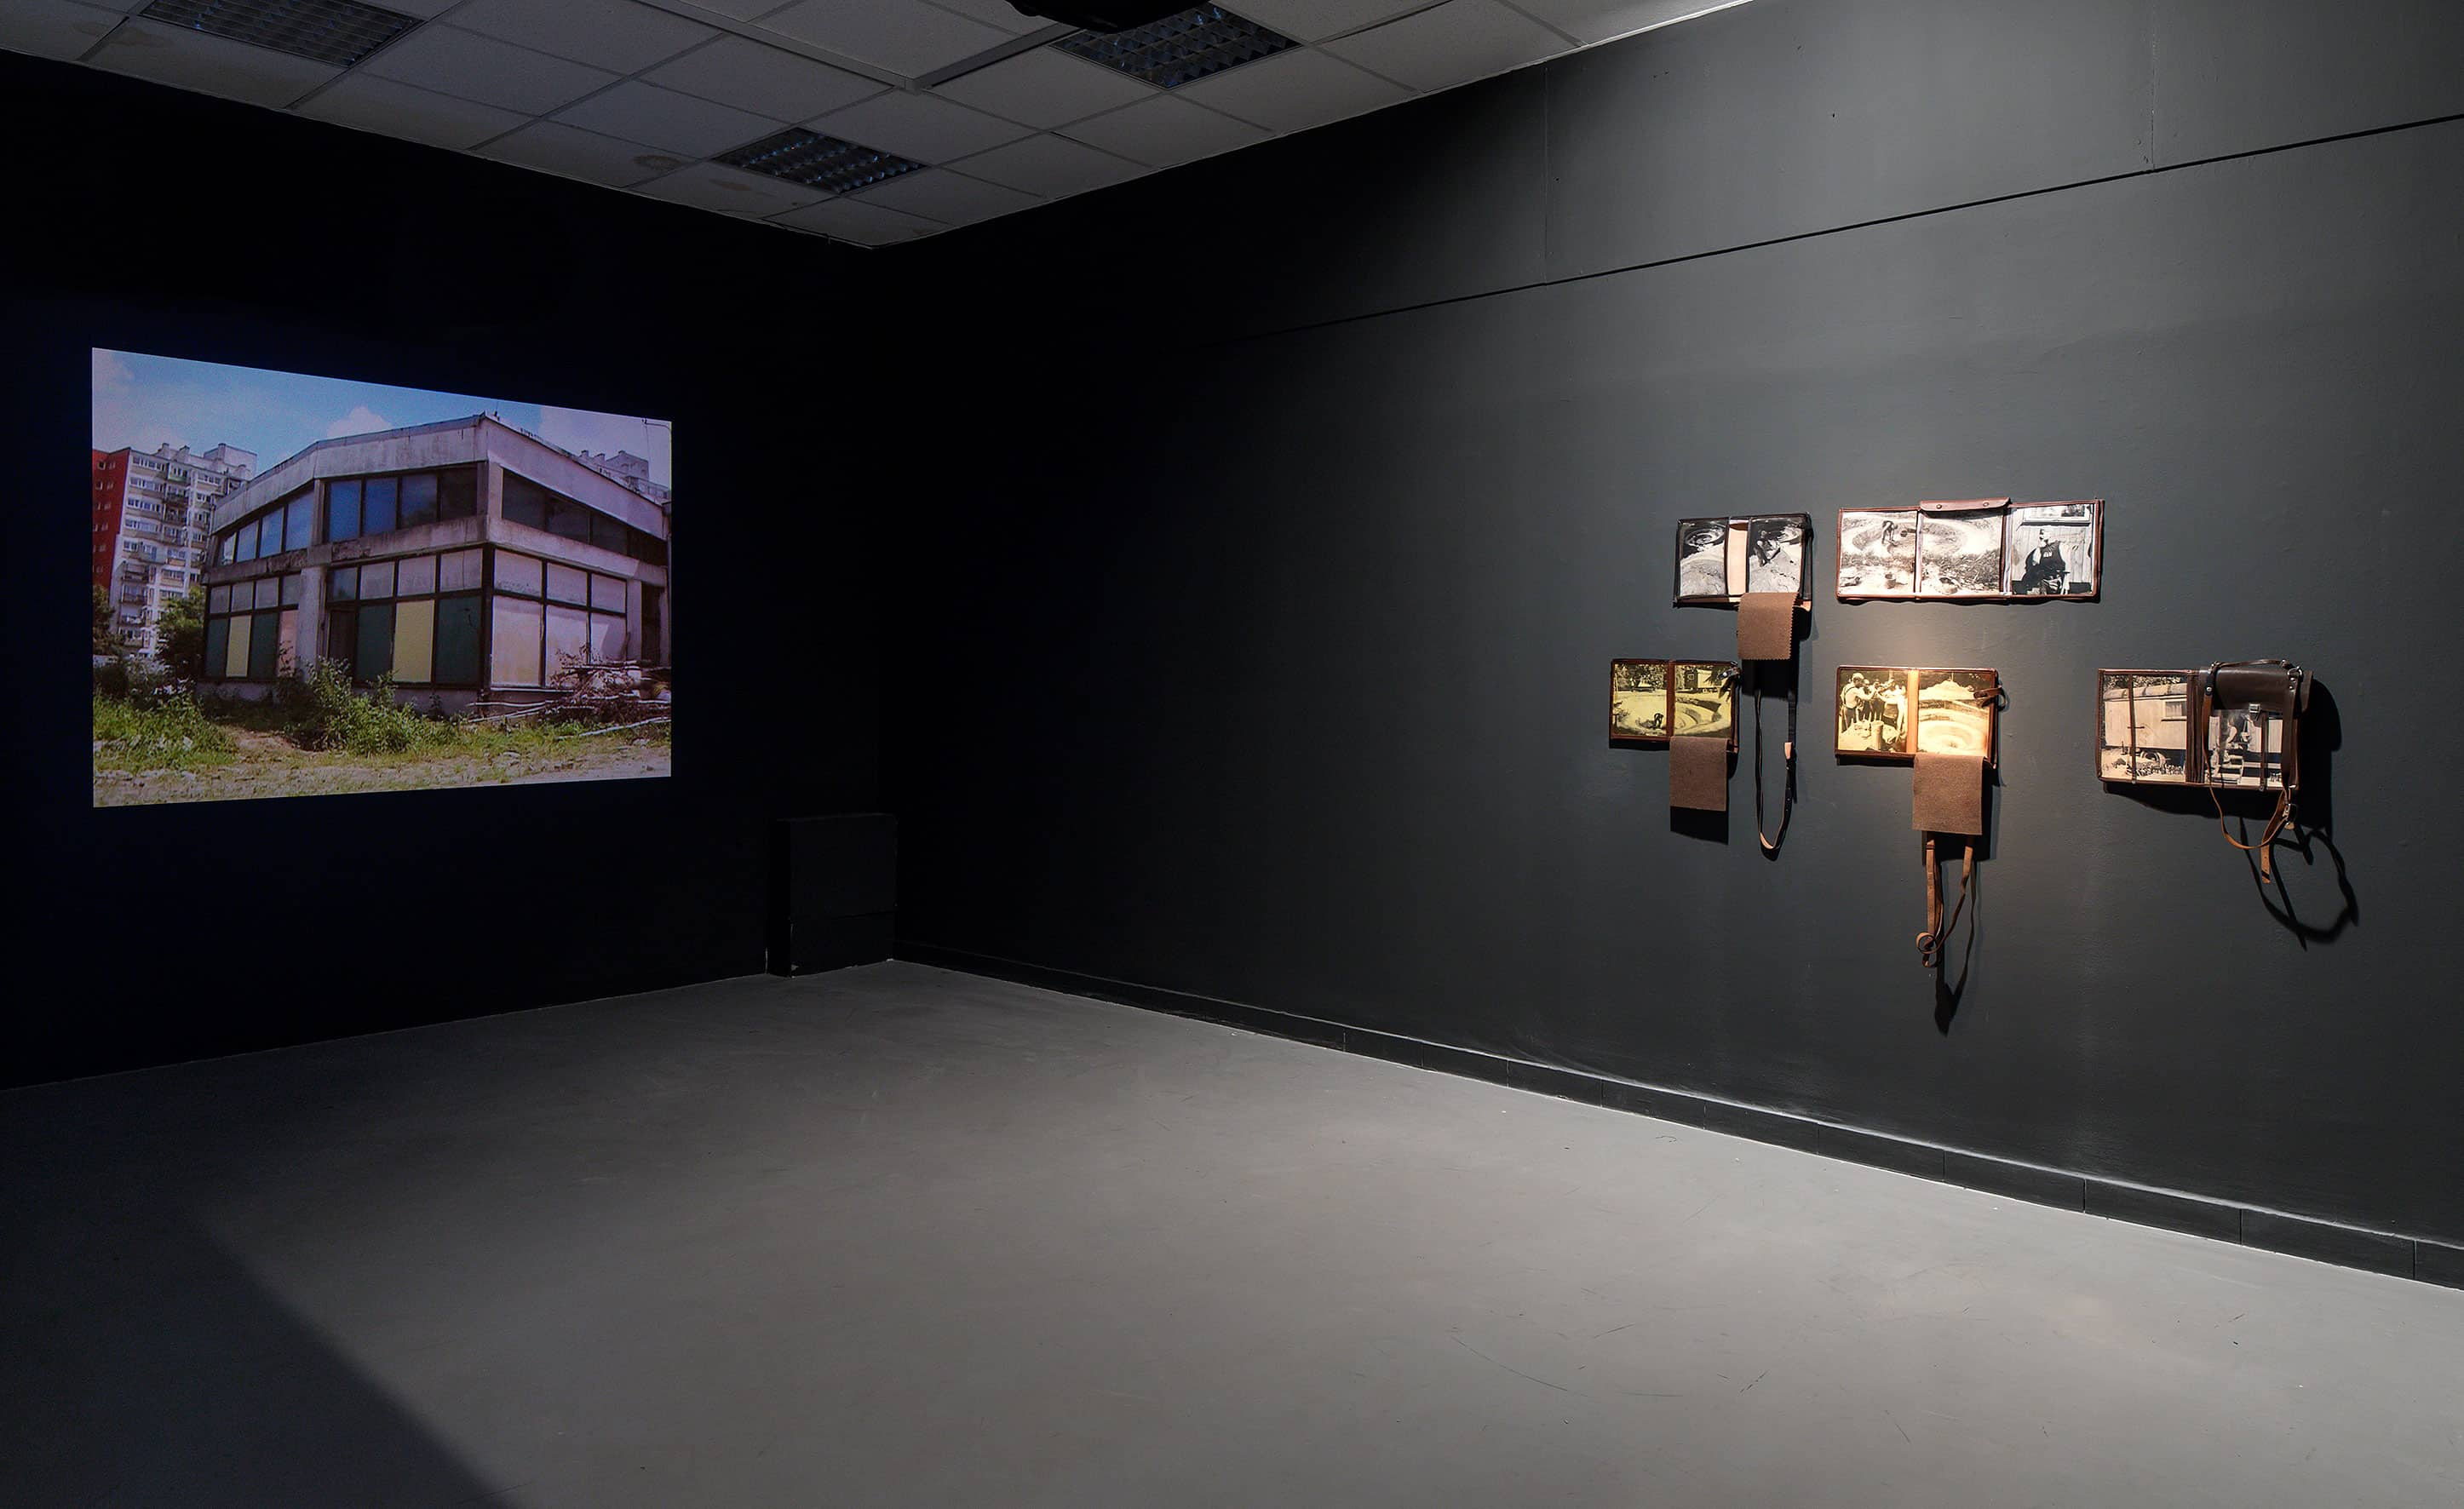 View from the exhibition 'Operations on places', on the left: 'Good Advice' Cezary Klimaszewski, on the right: '+/-' Robert Kuśmirowski, photo: Elad Sarig, courtesy of the Petach Tikva Museum of Art